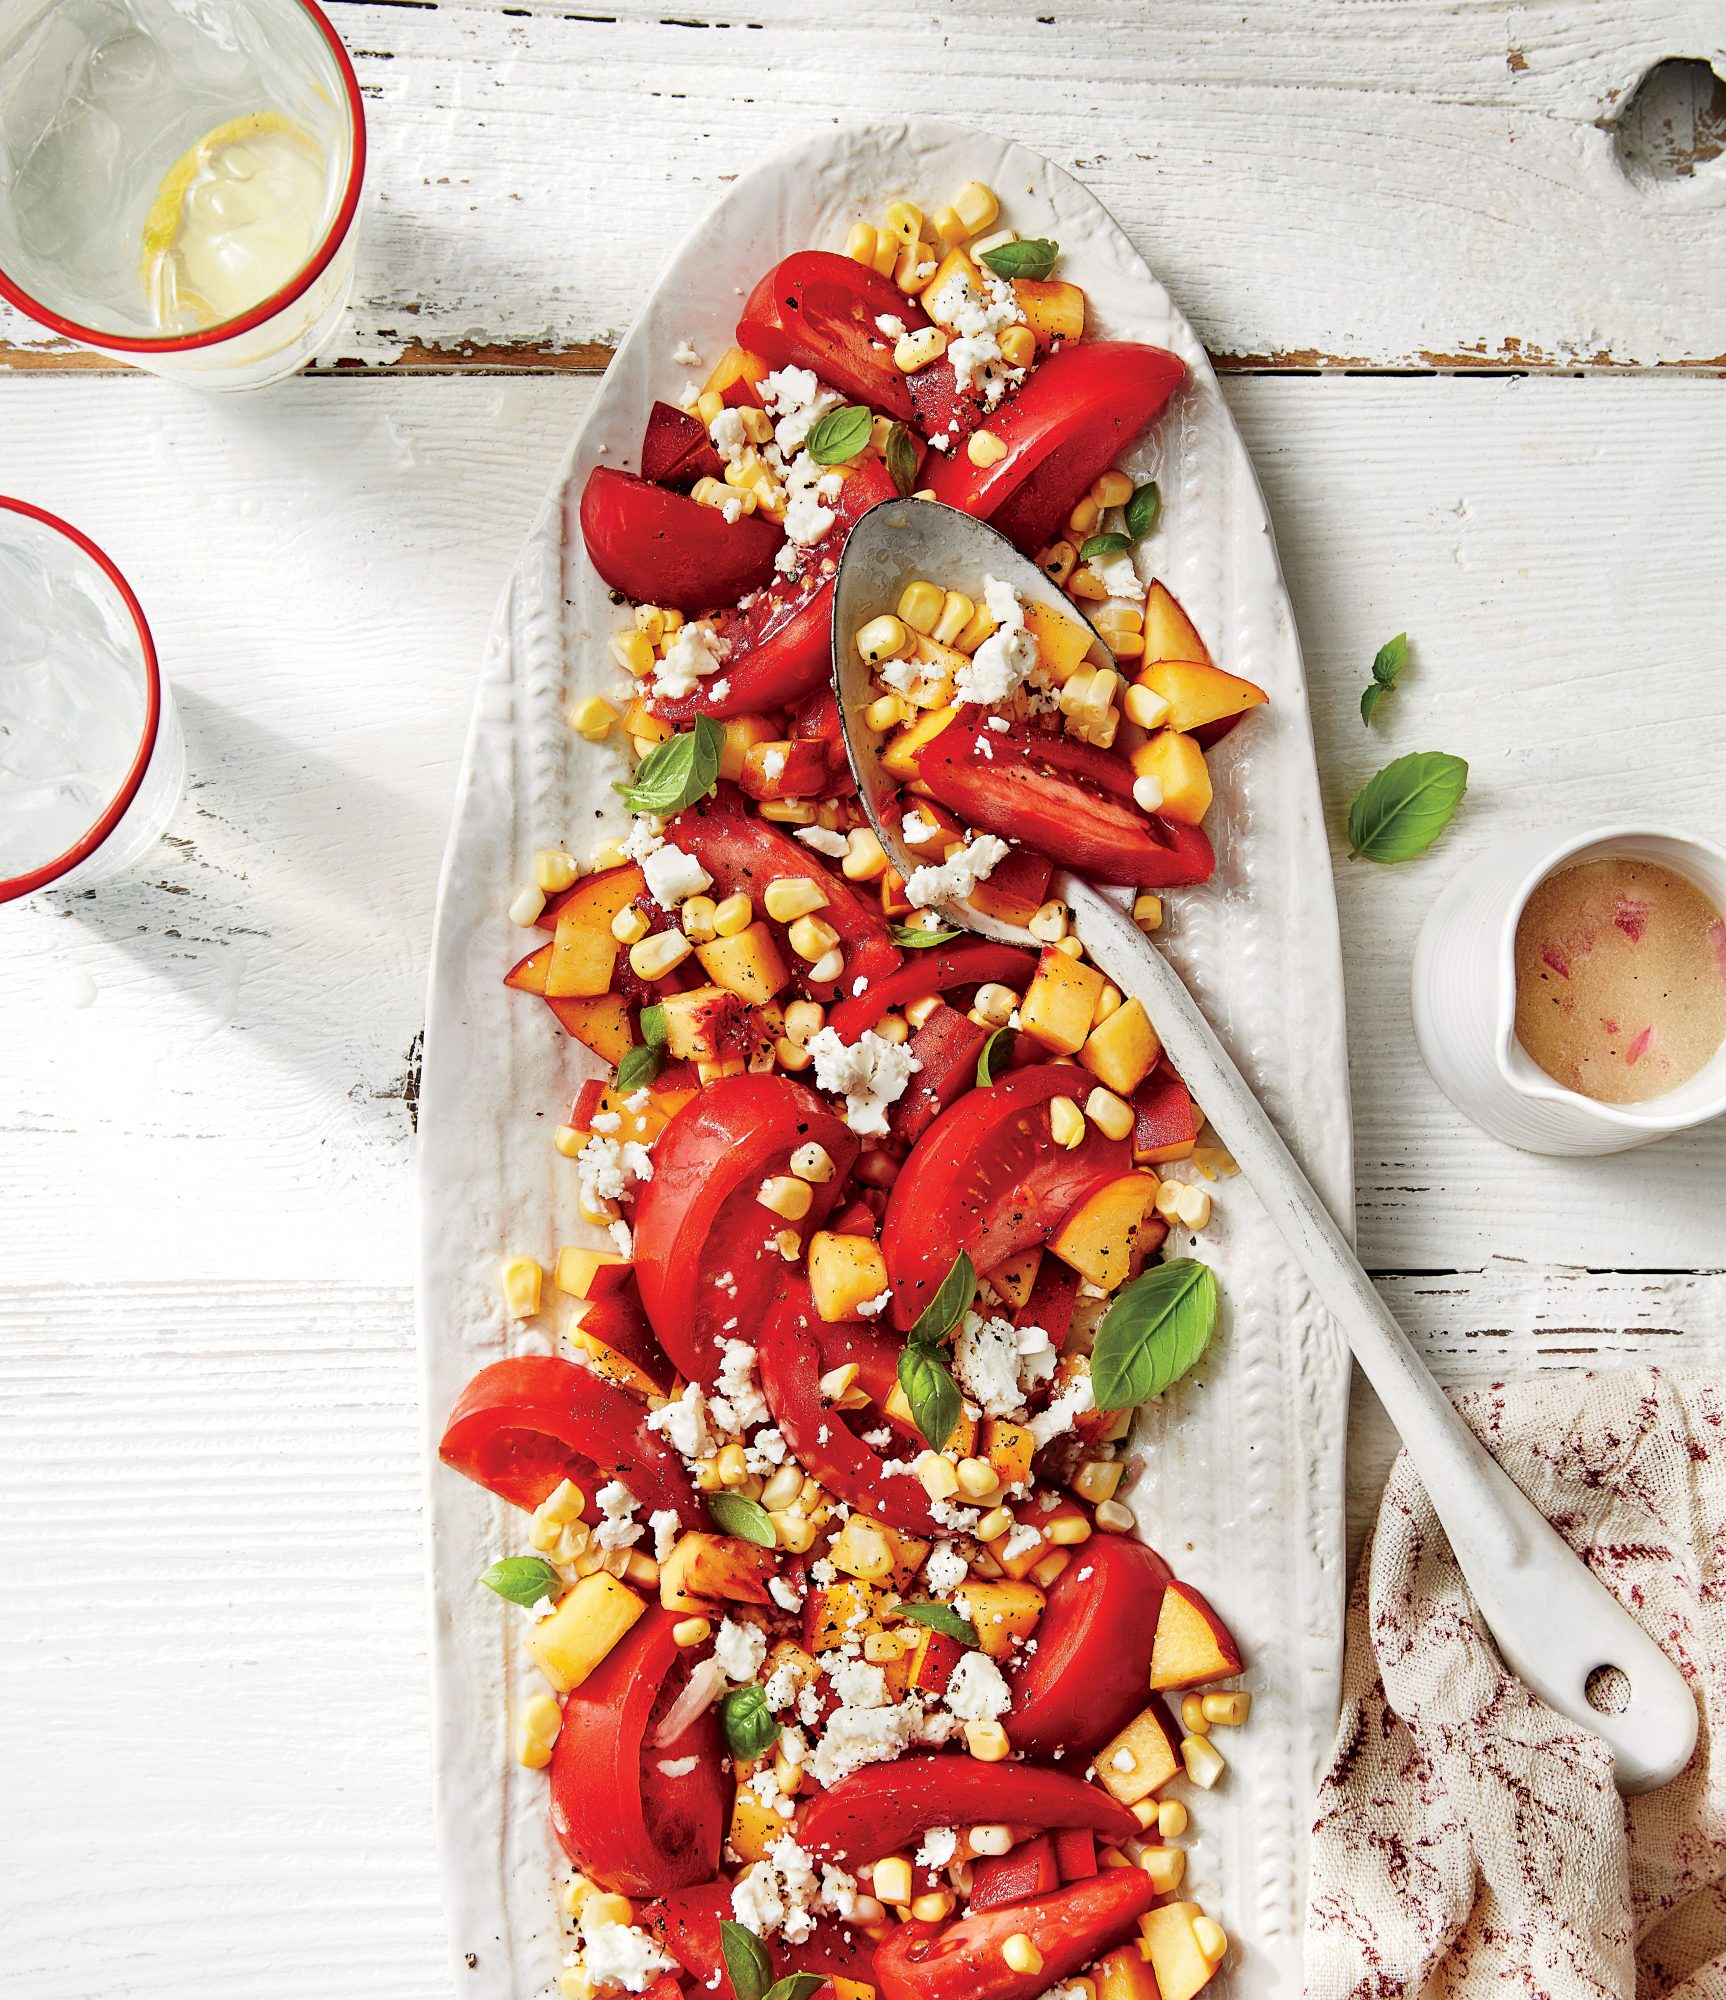 Tomato, Peach, and Corn Salad Recipe